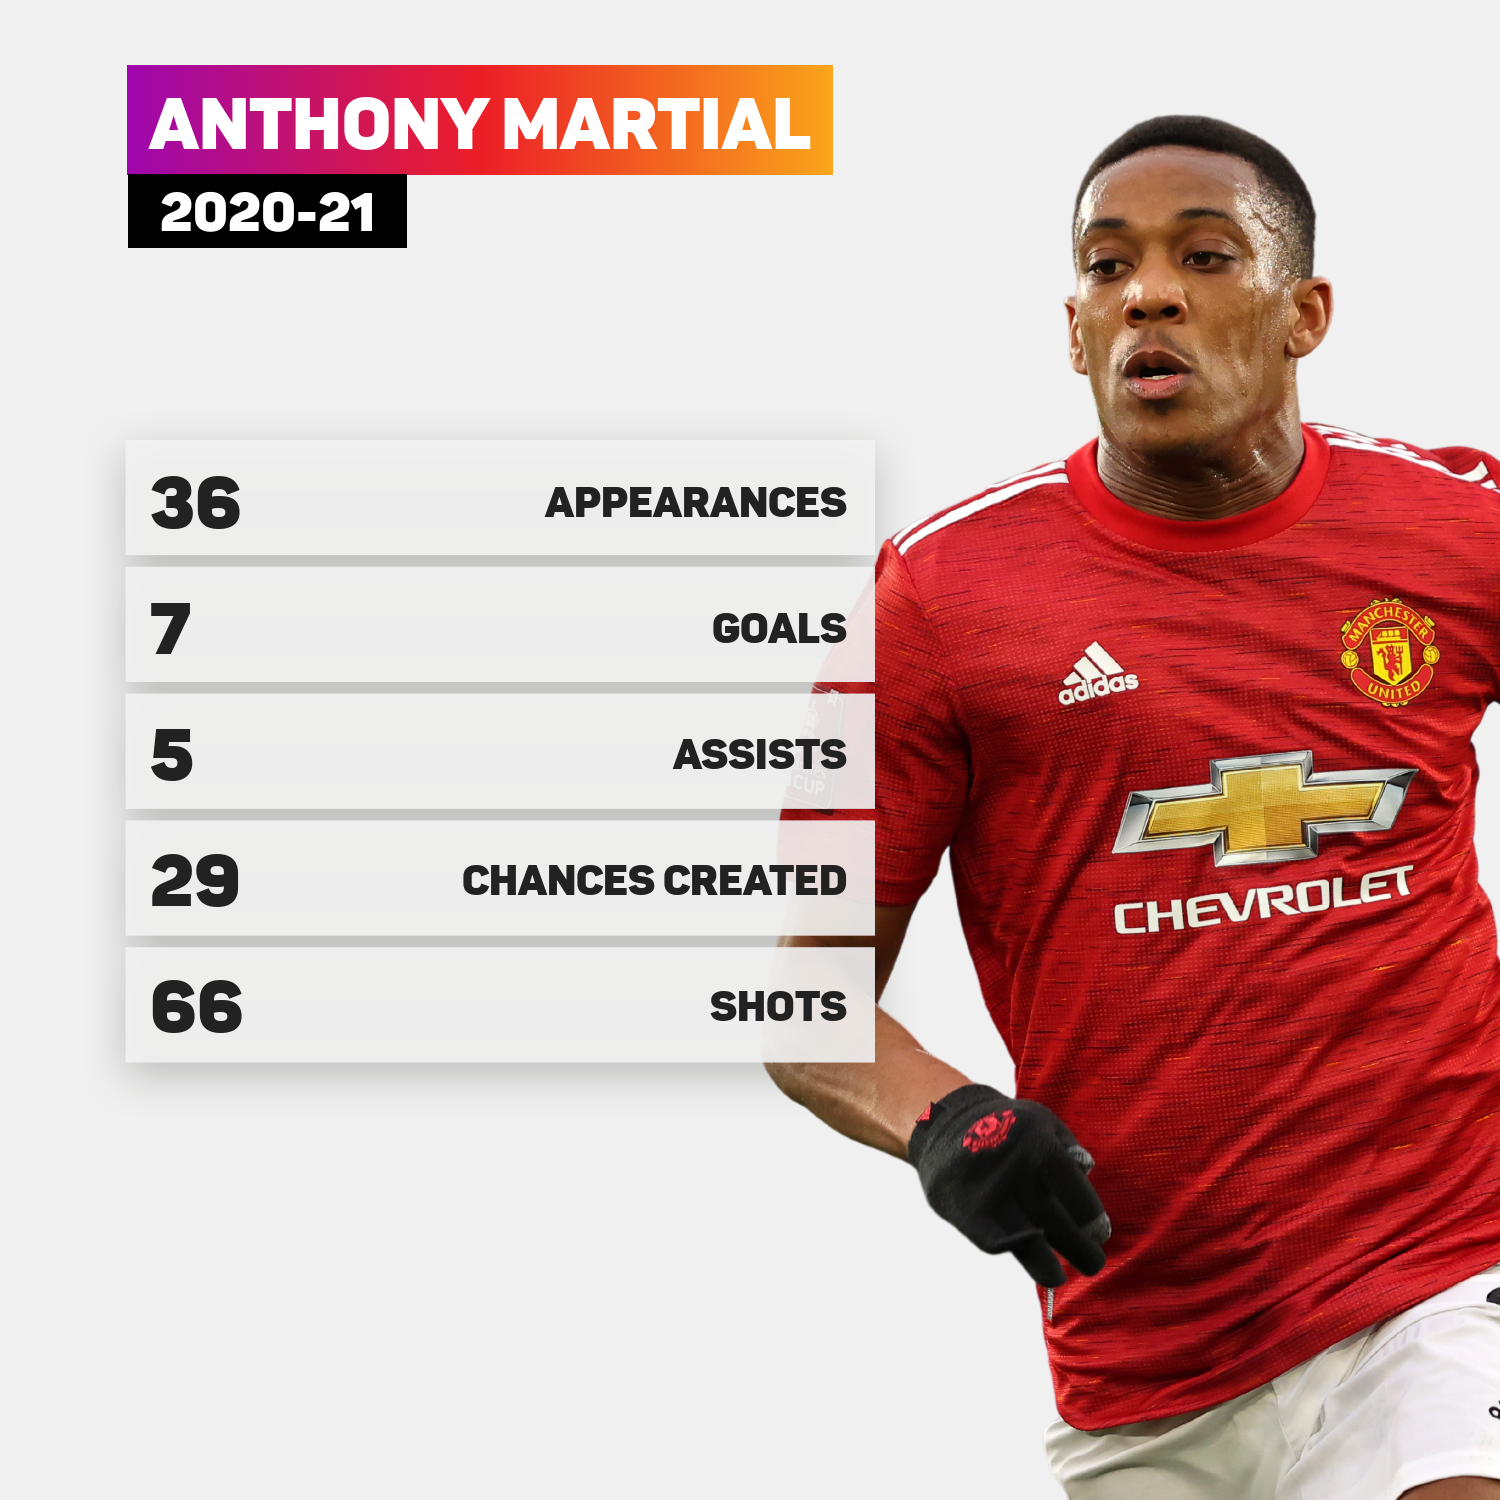 Anthony Martial endured a difficult season in 2020-21